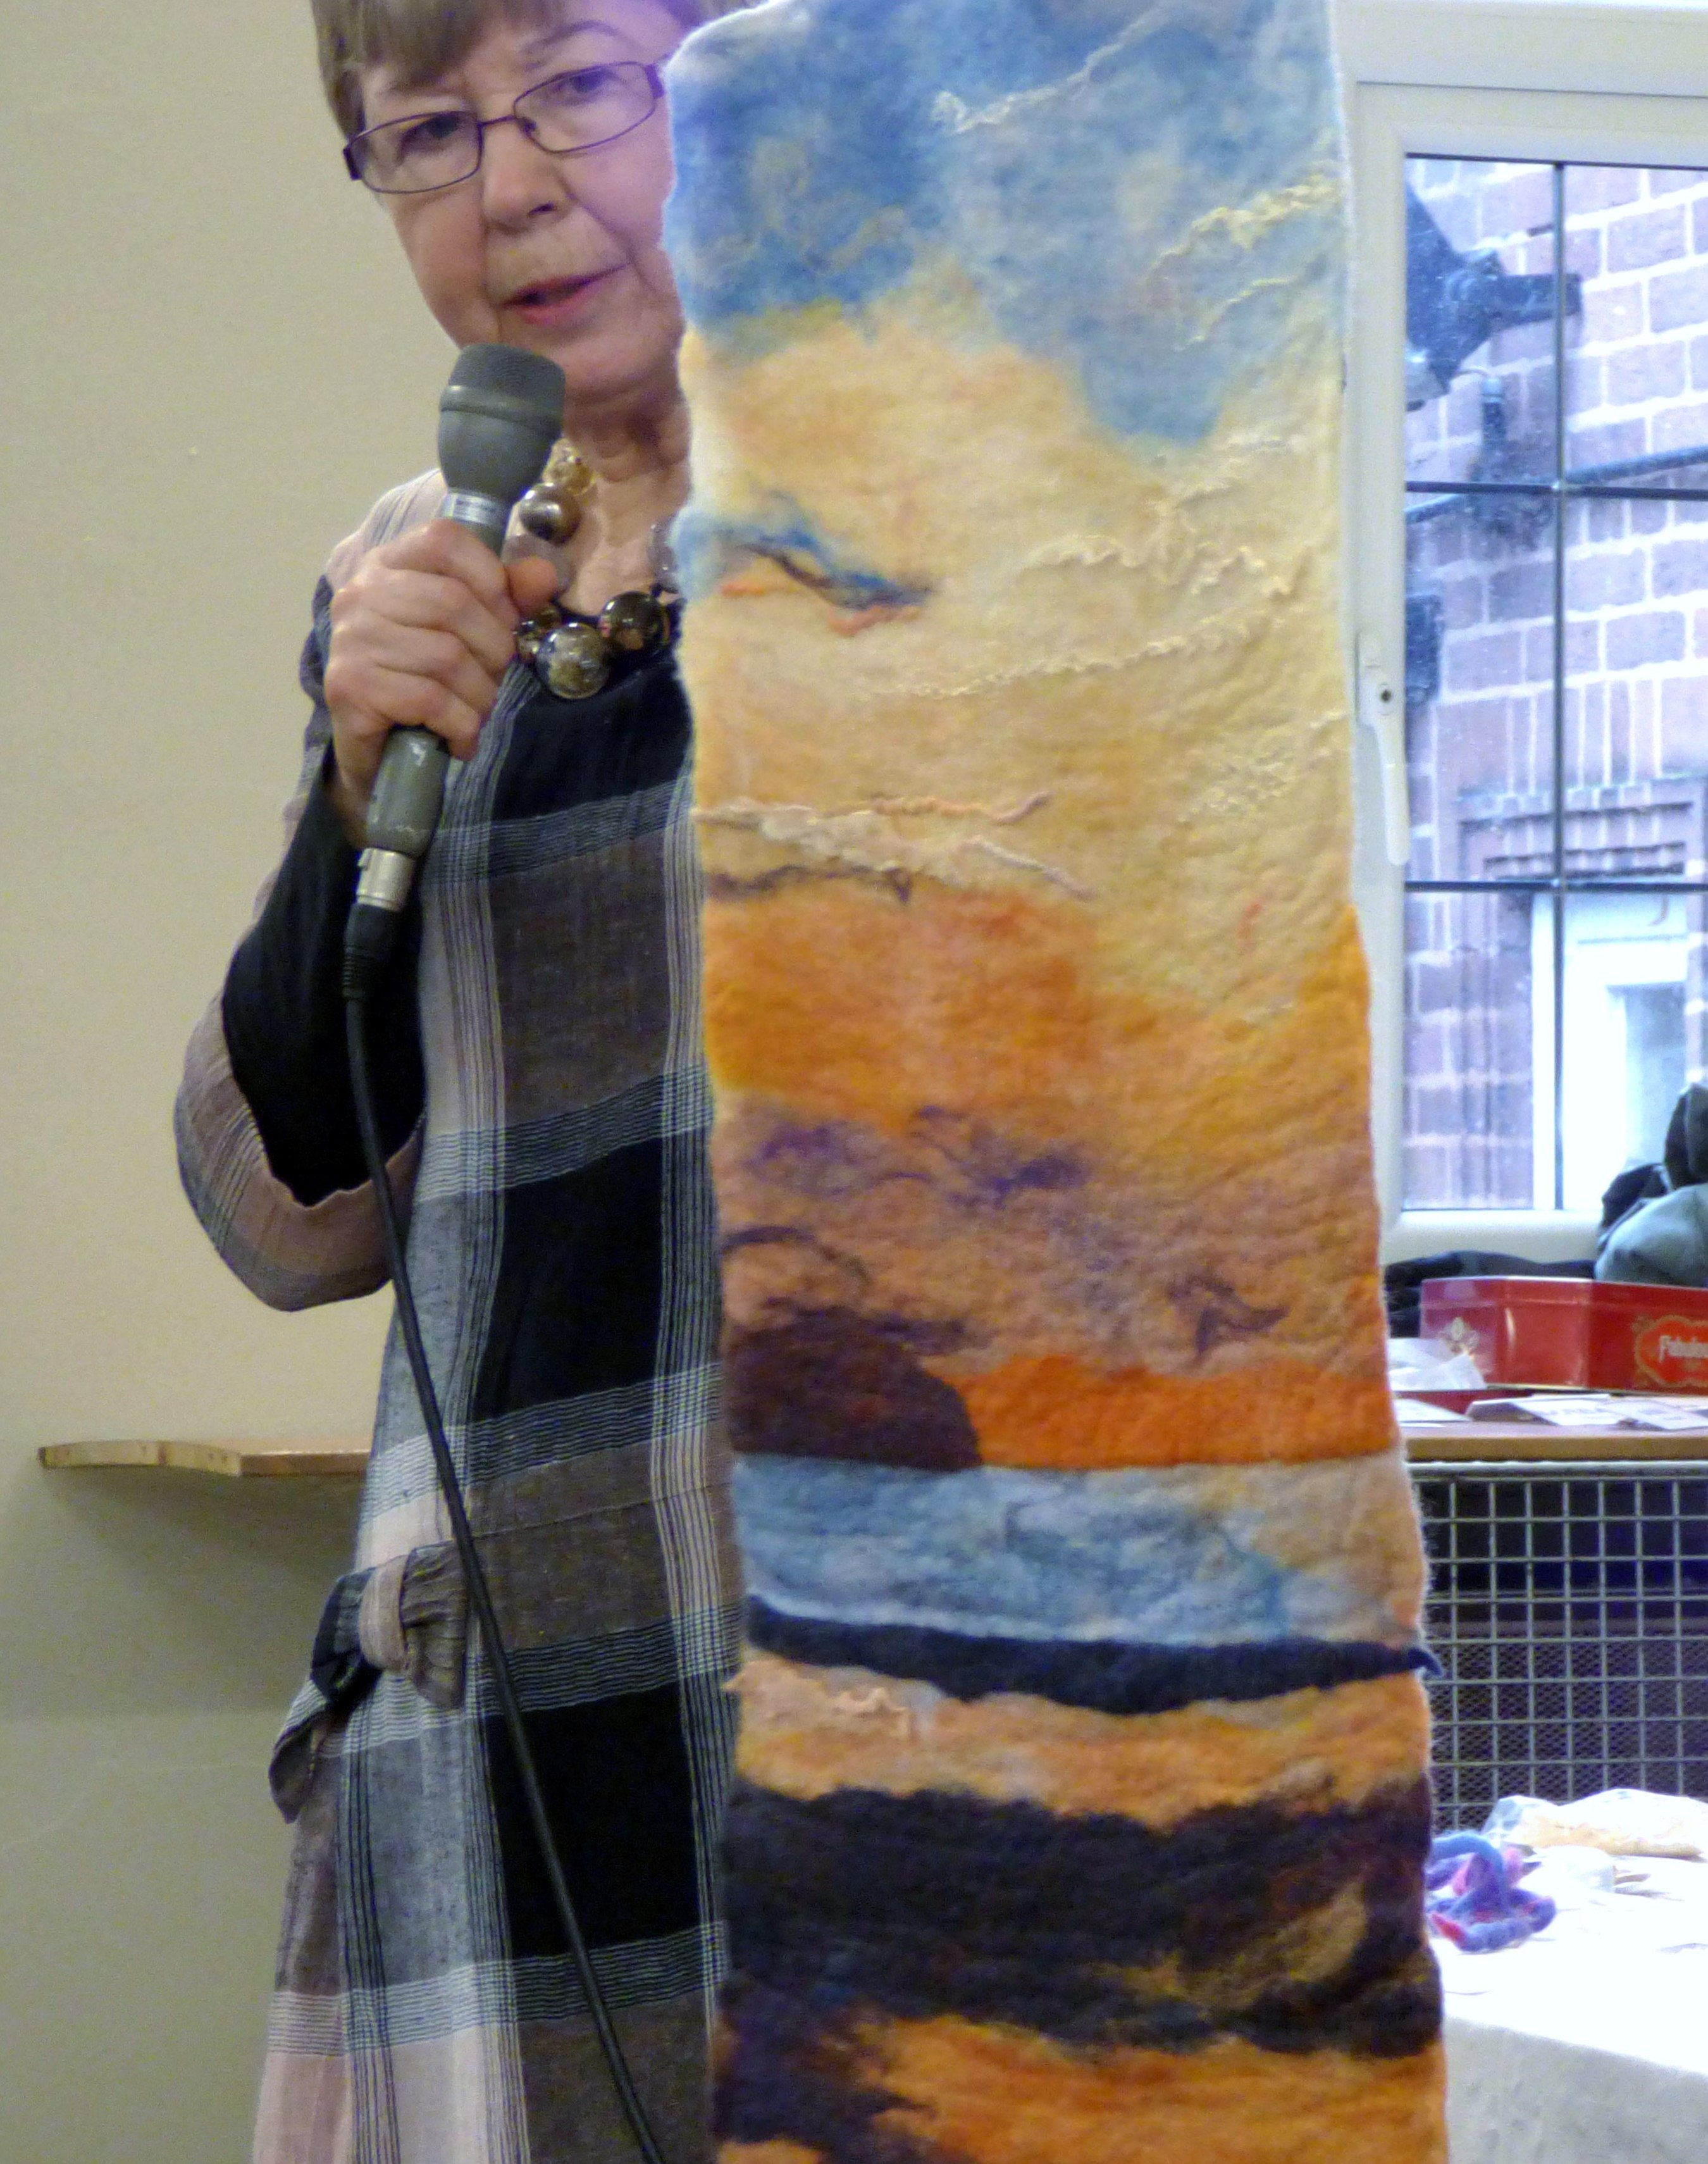 Ronny White with a felt weaving of a sunset, N.Wales EG